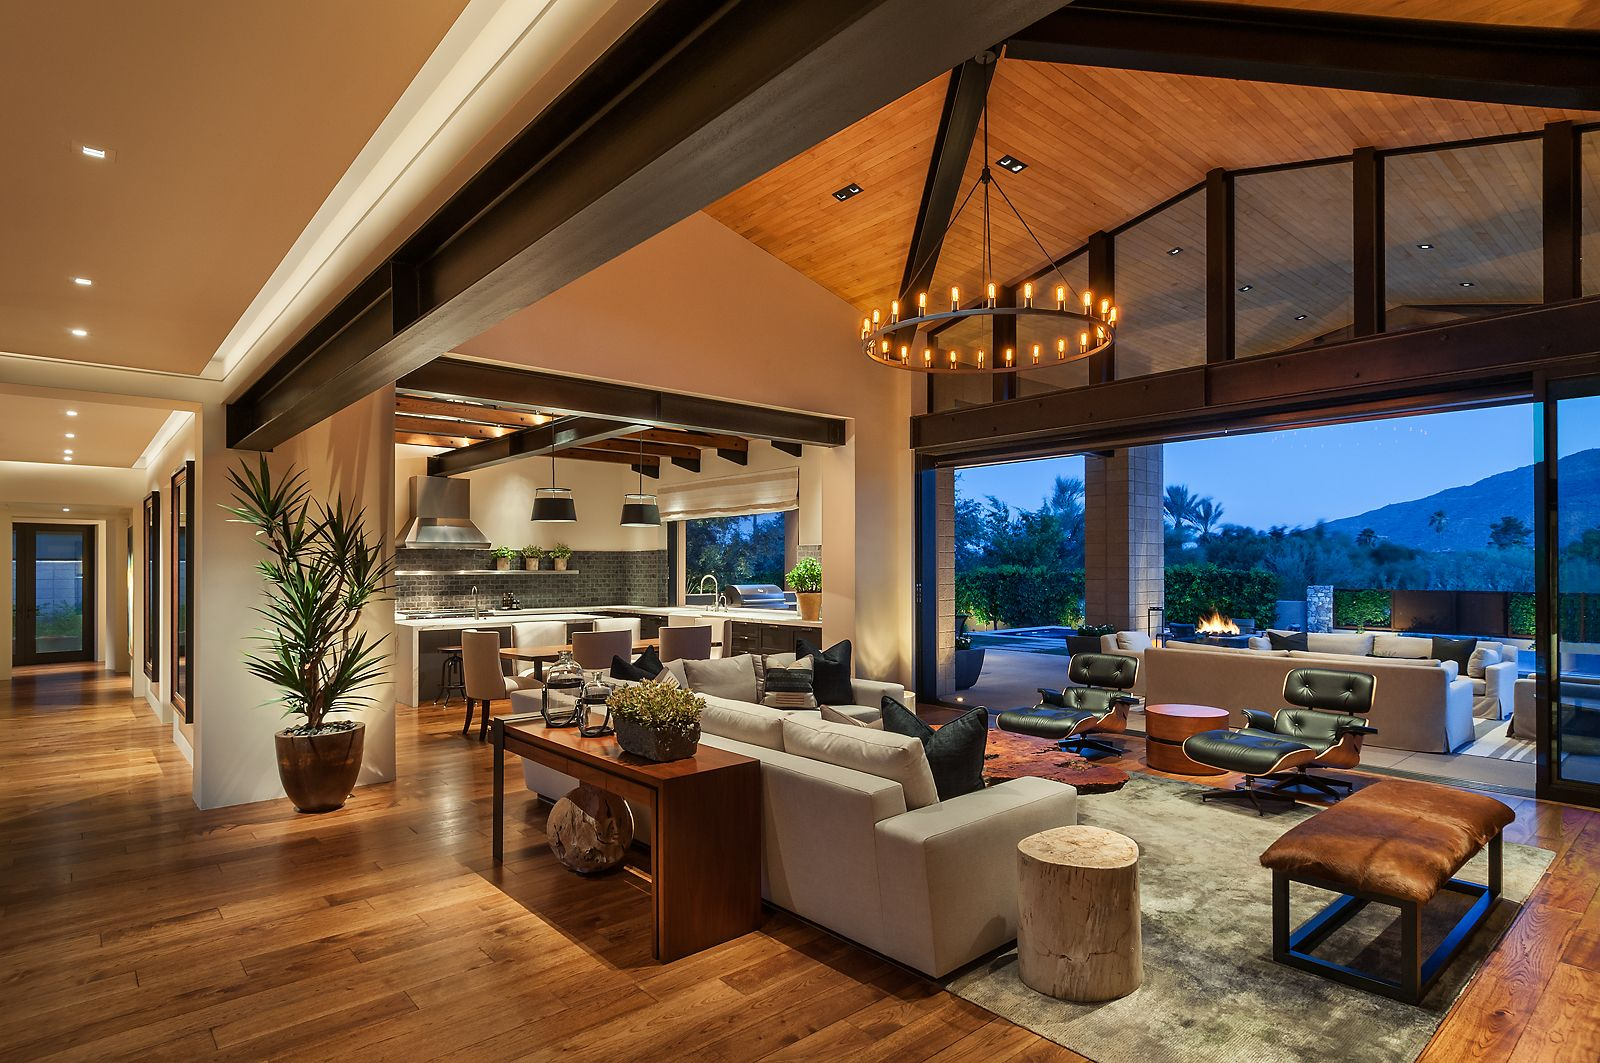 Home (With images) | Mountain home interiors, Small modern ...